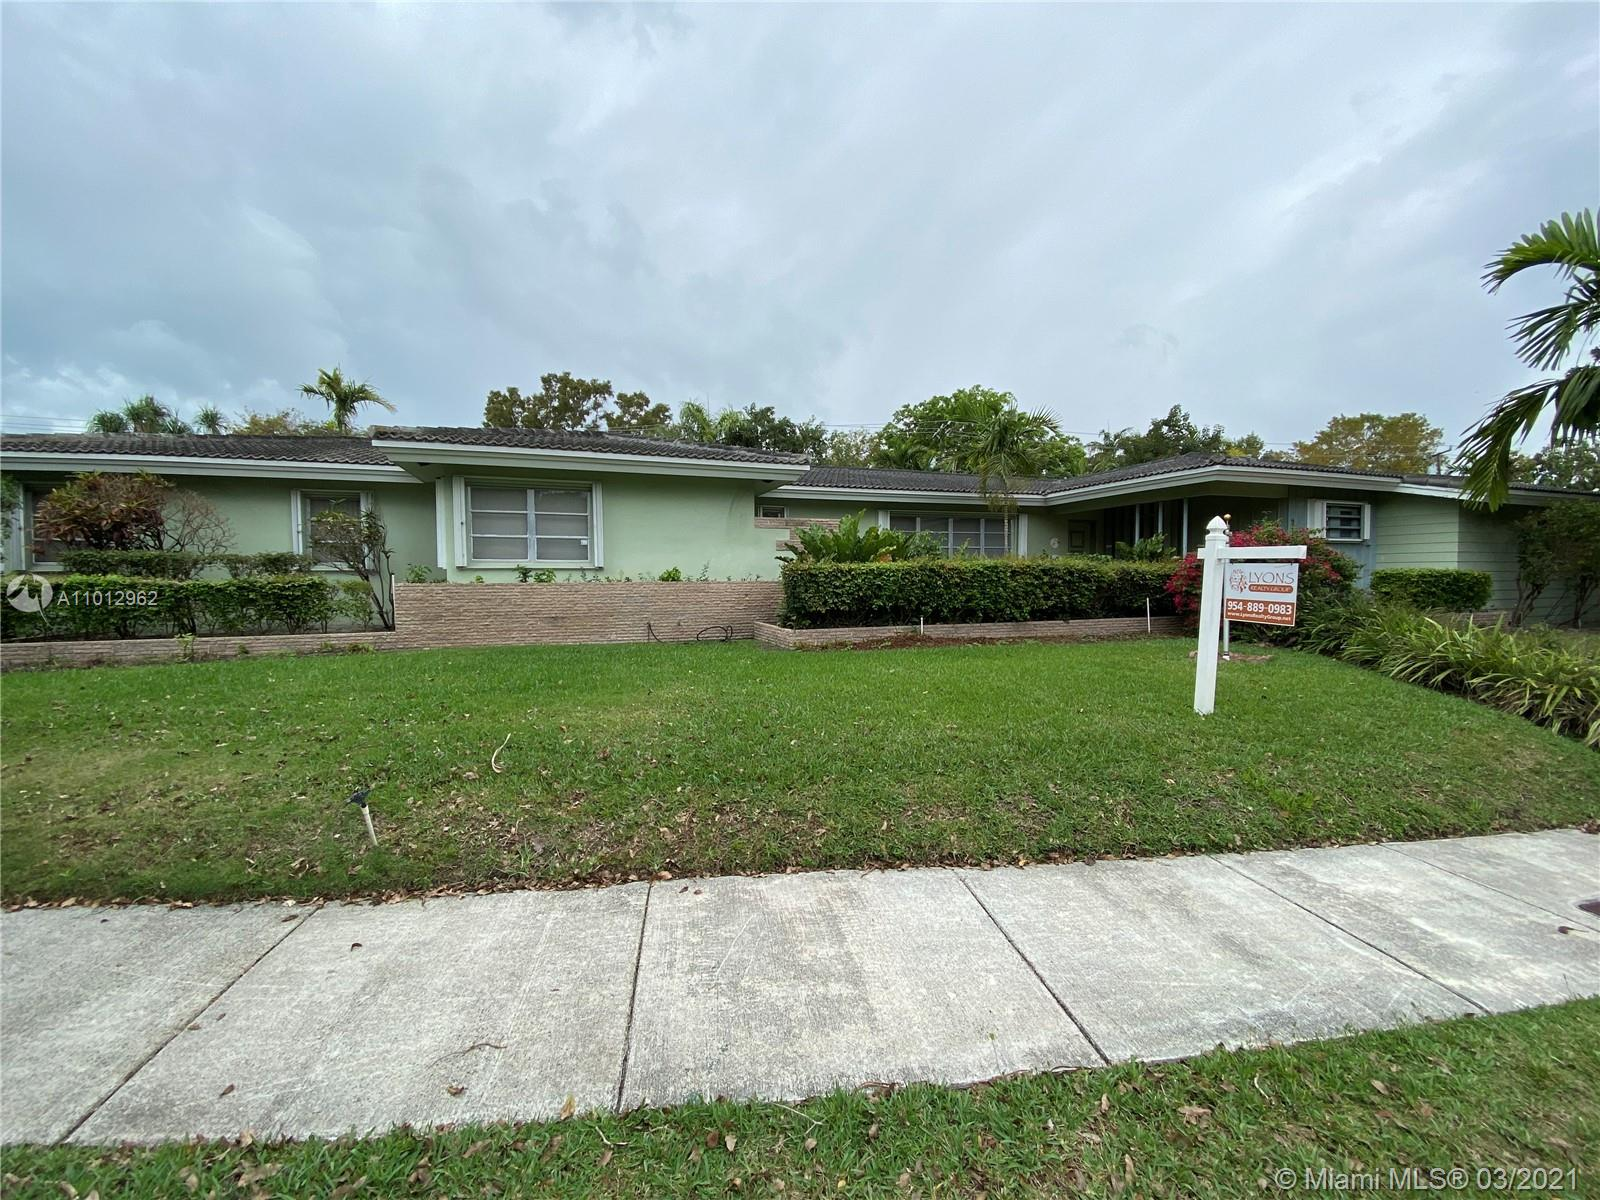 4/4 home on 18,000sf land in Bay Heights. Loaded with lots of closets and large rooms.  Features (2) master bedrooms with ensuite bathrooms. Home is in good condition but needs updating.